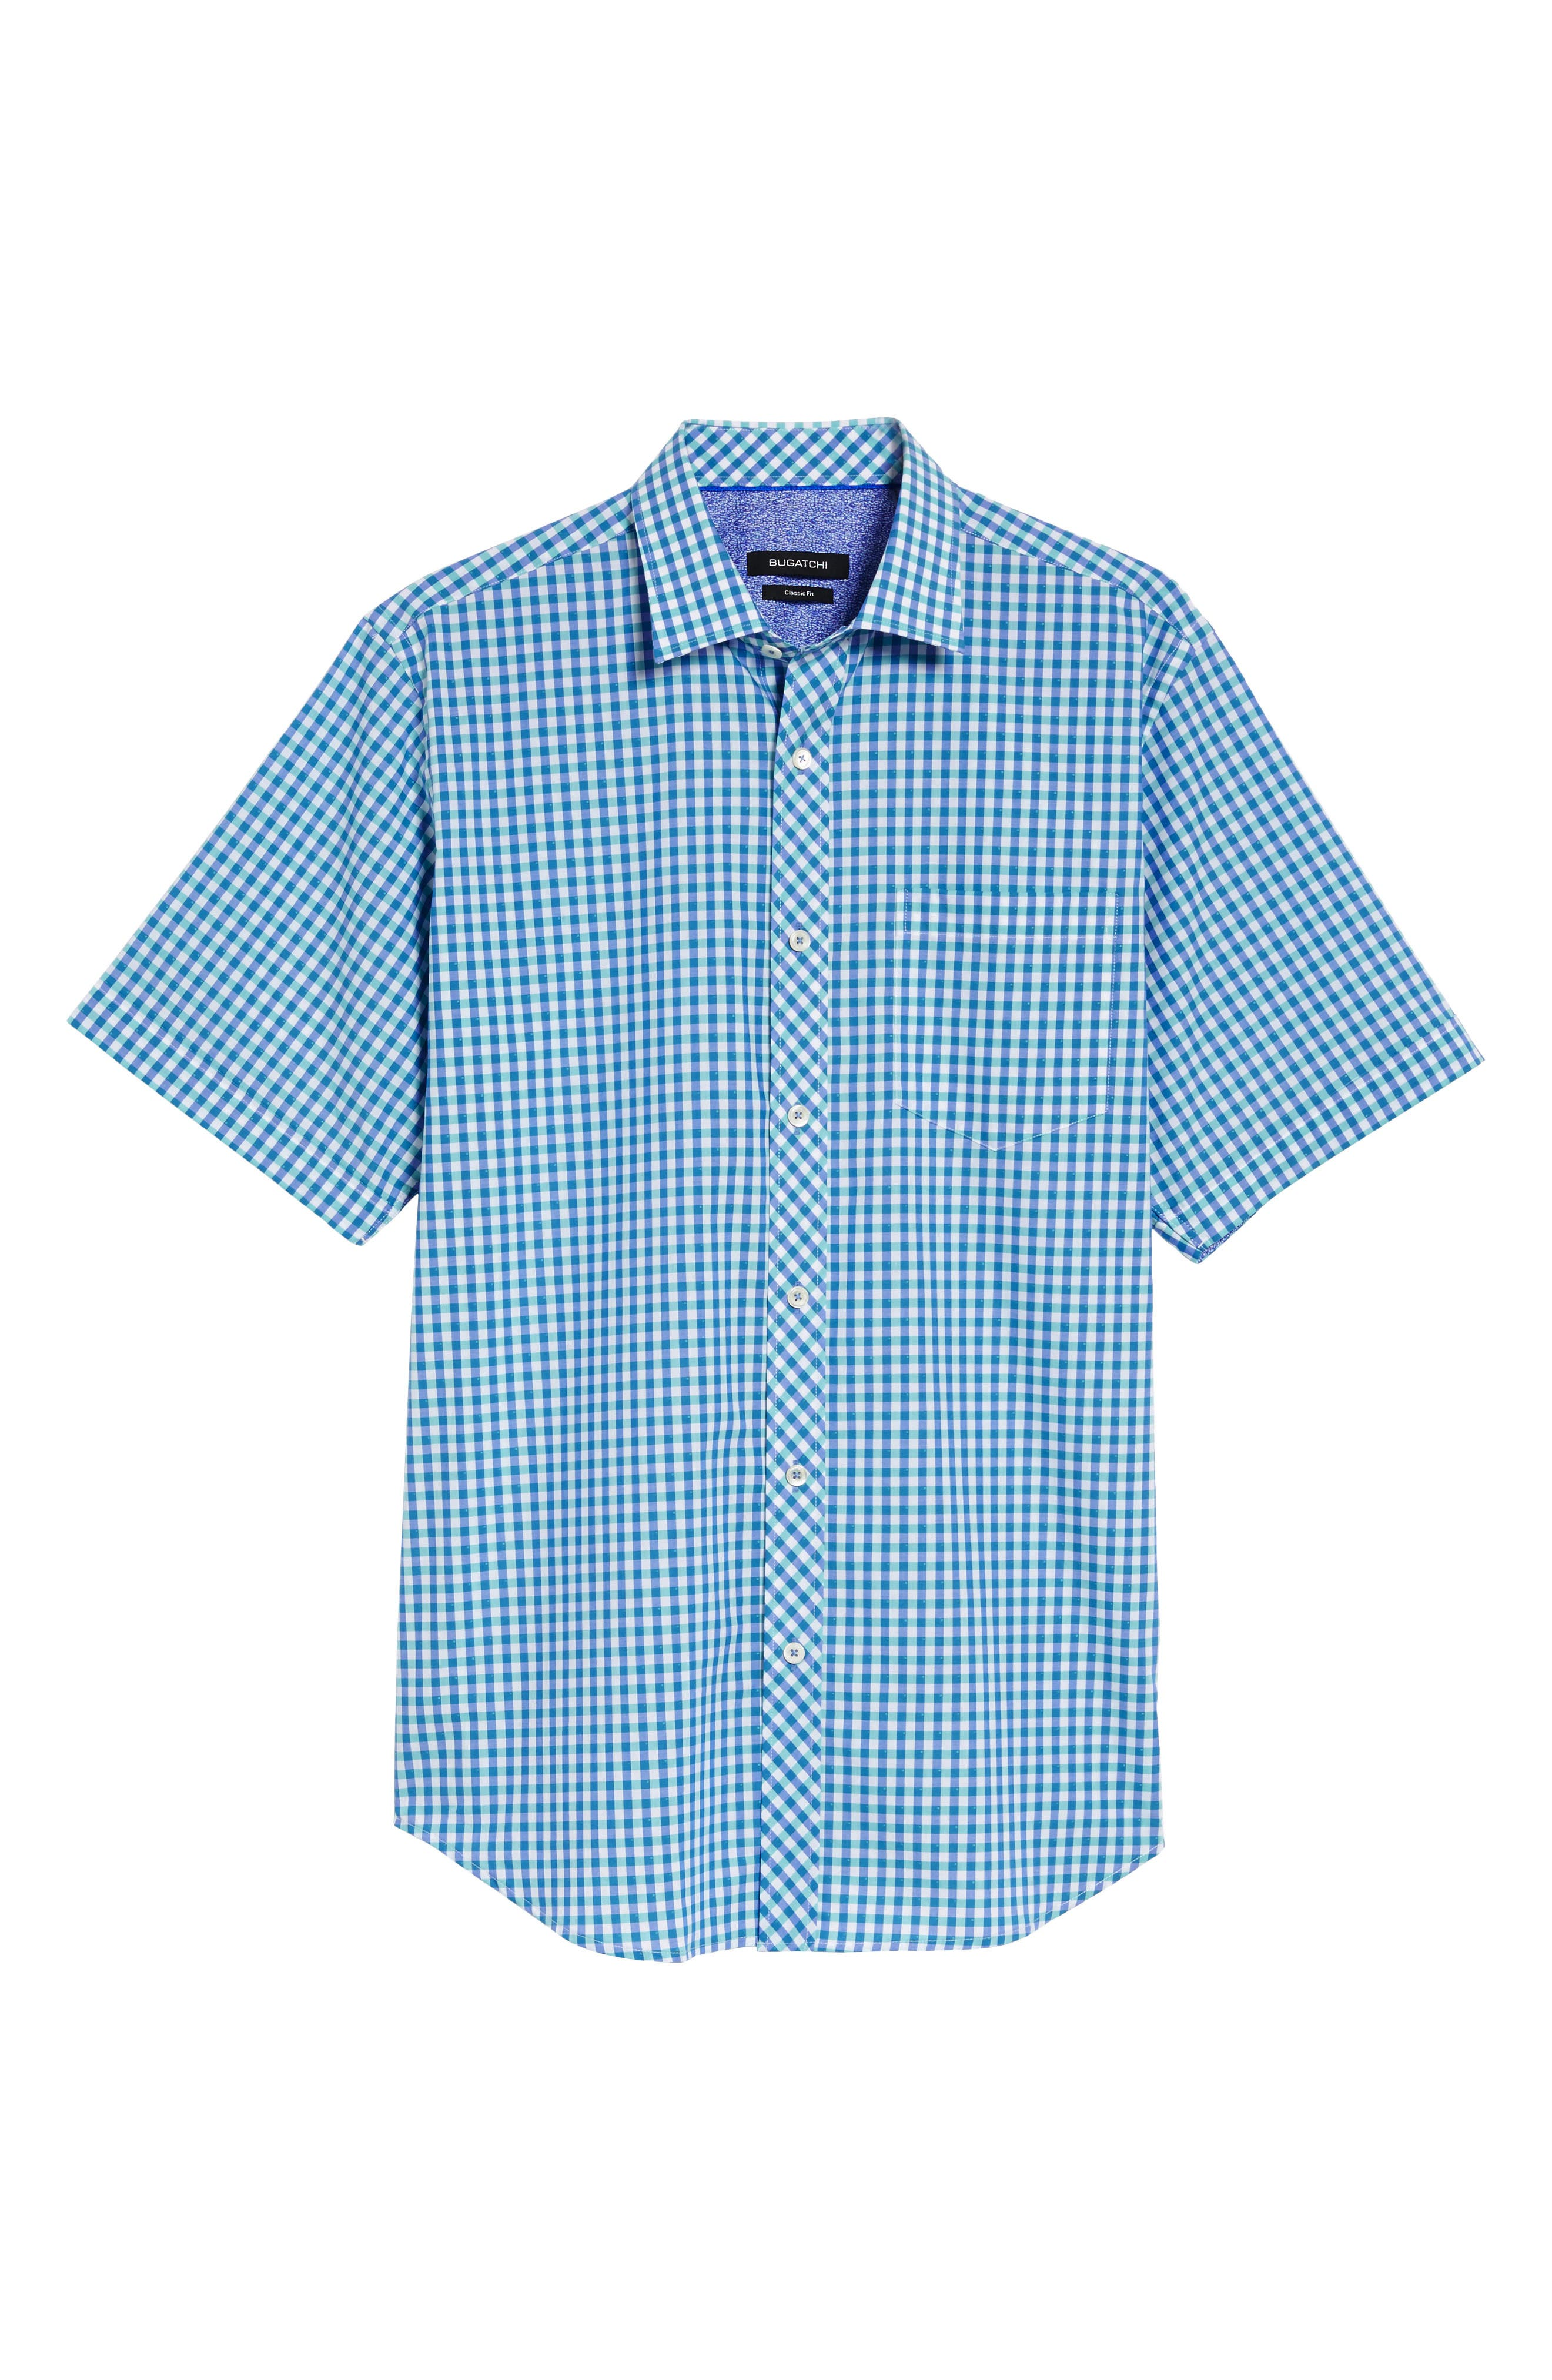 Classic Fit Check Sport Shirt,                             Alternate thumbnail 6, color,                             420